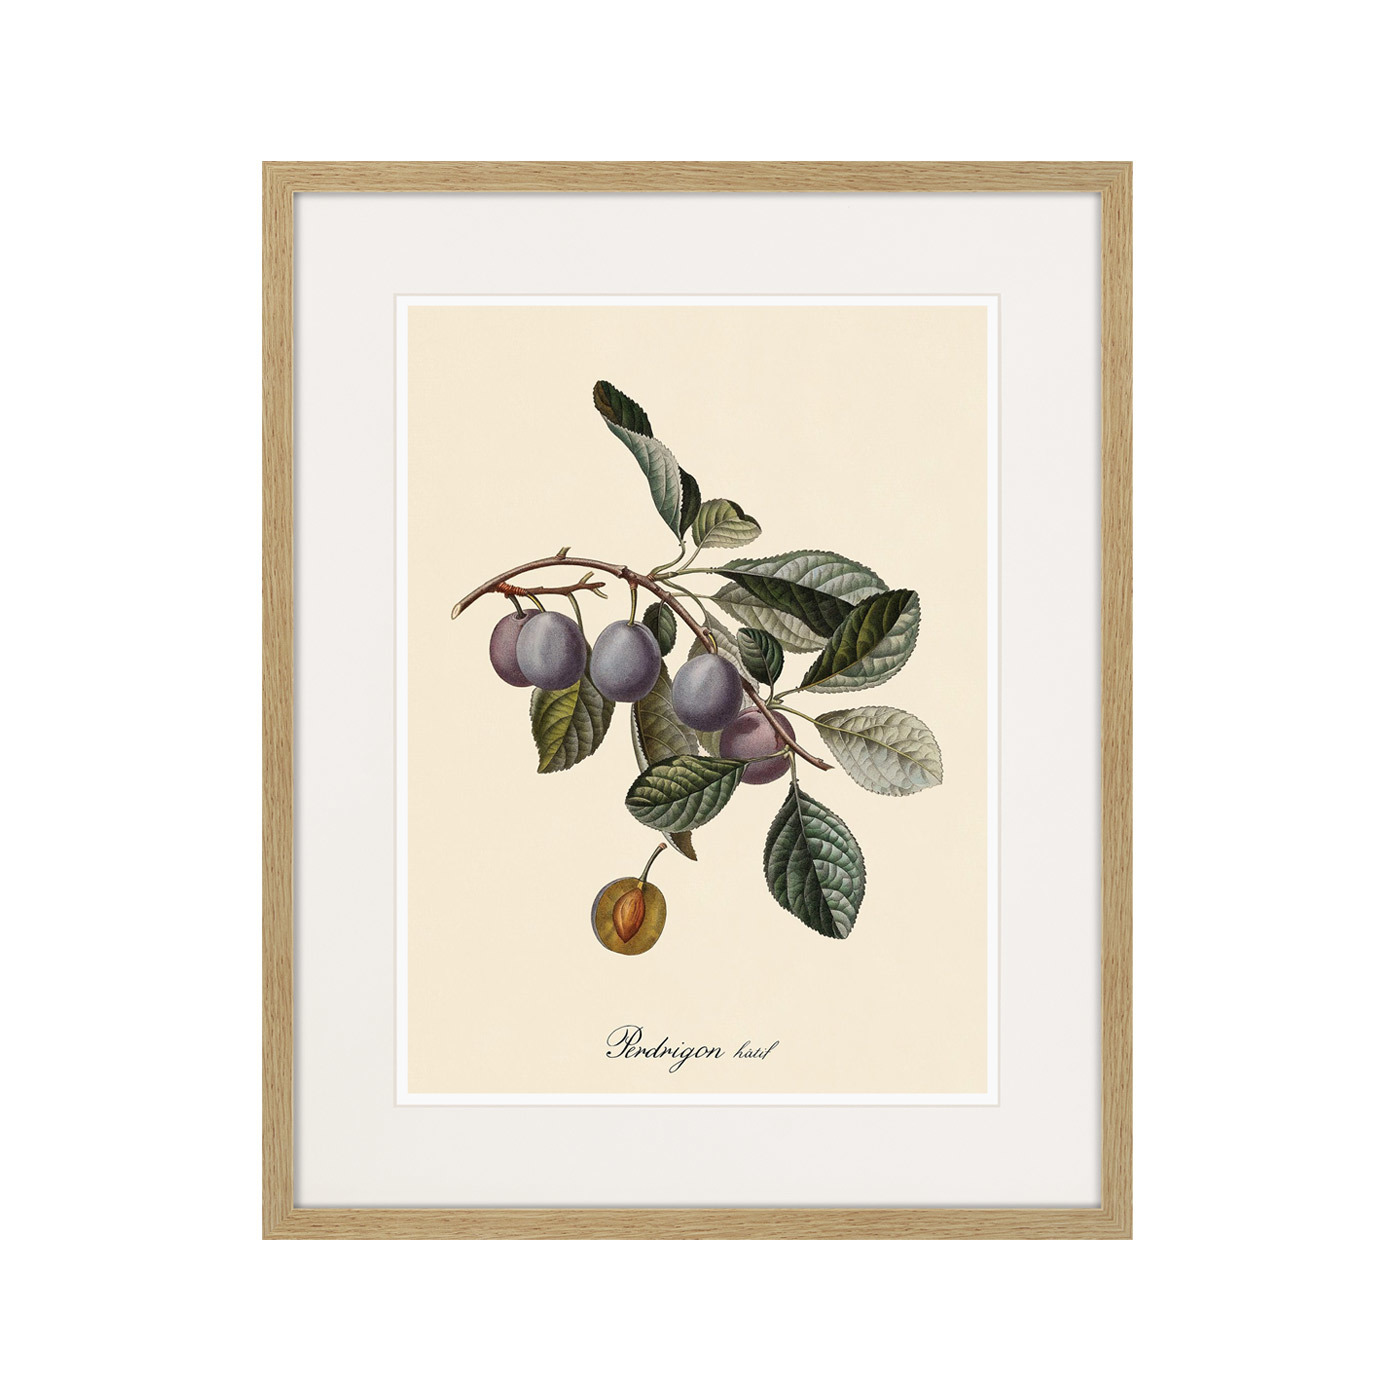 Juicy fruit lithography №5, 1870г.